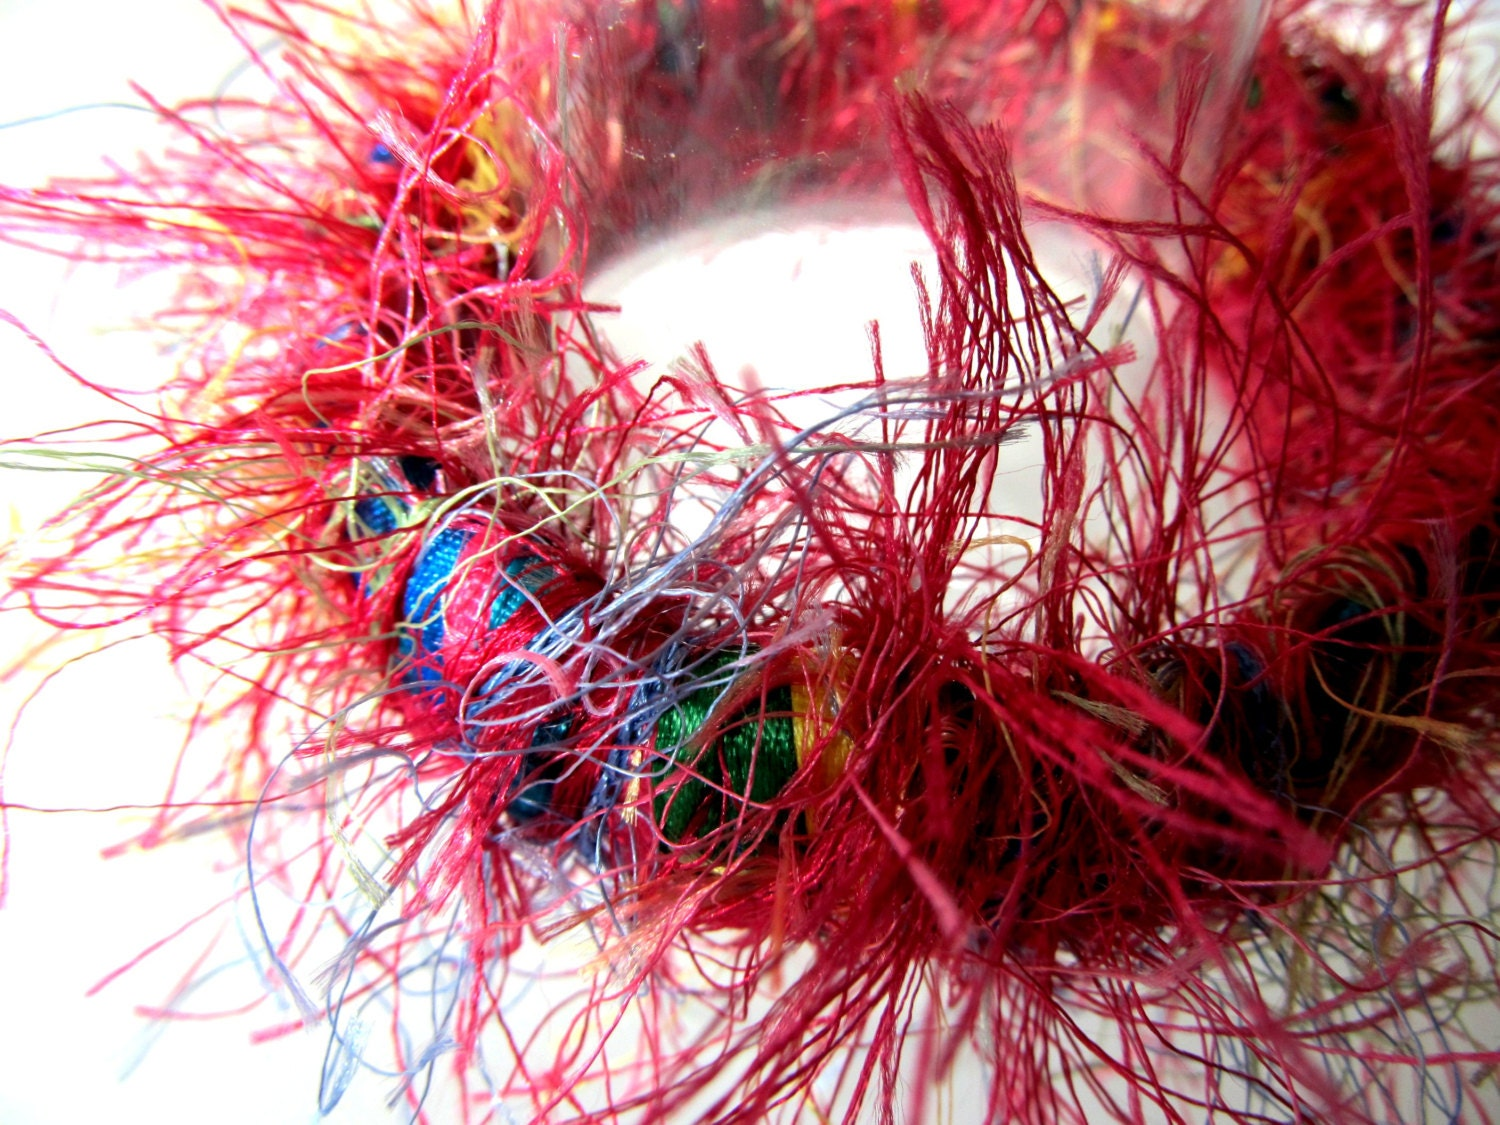 Multicolored Ribbon & Glitter Eyelash Yarn Hand by MimzyJewelry